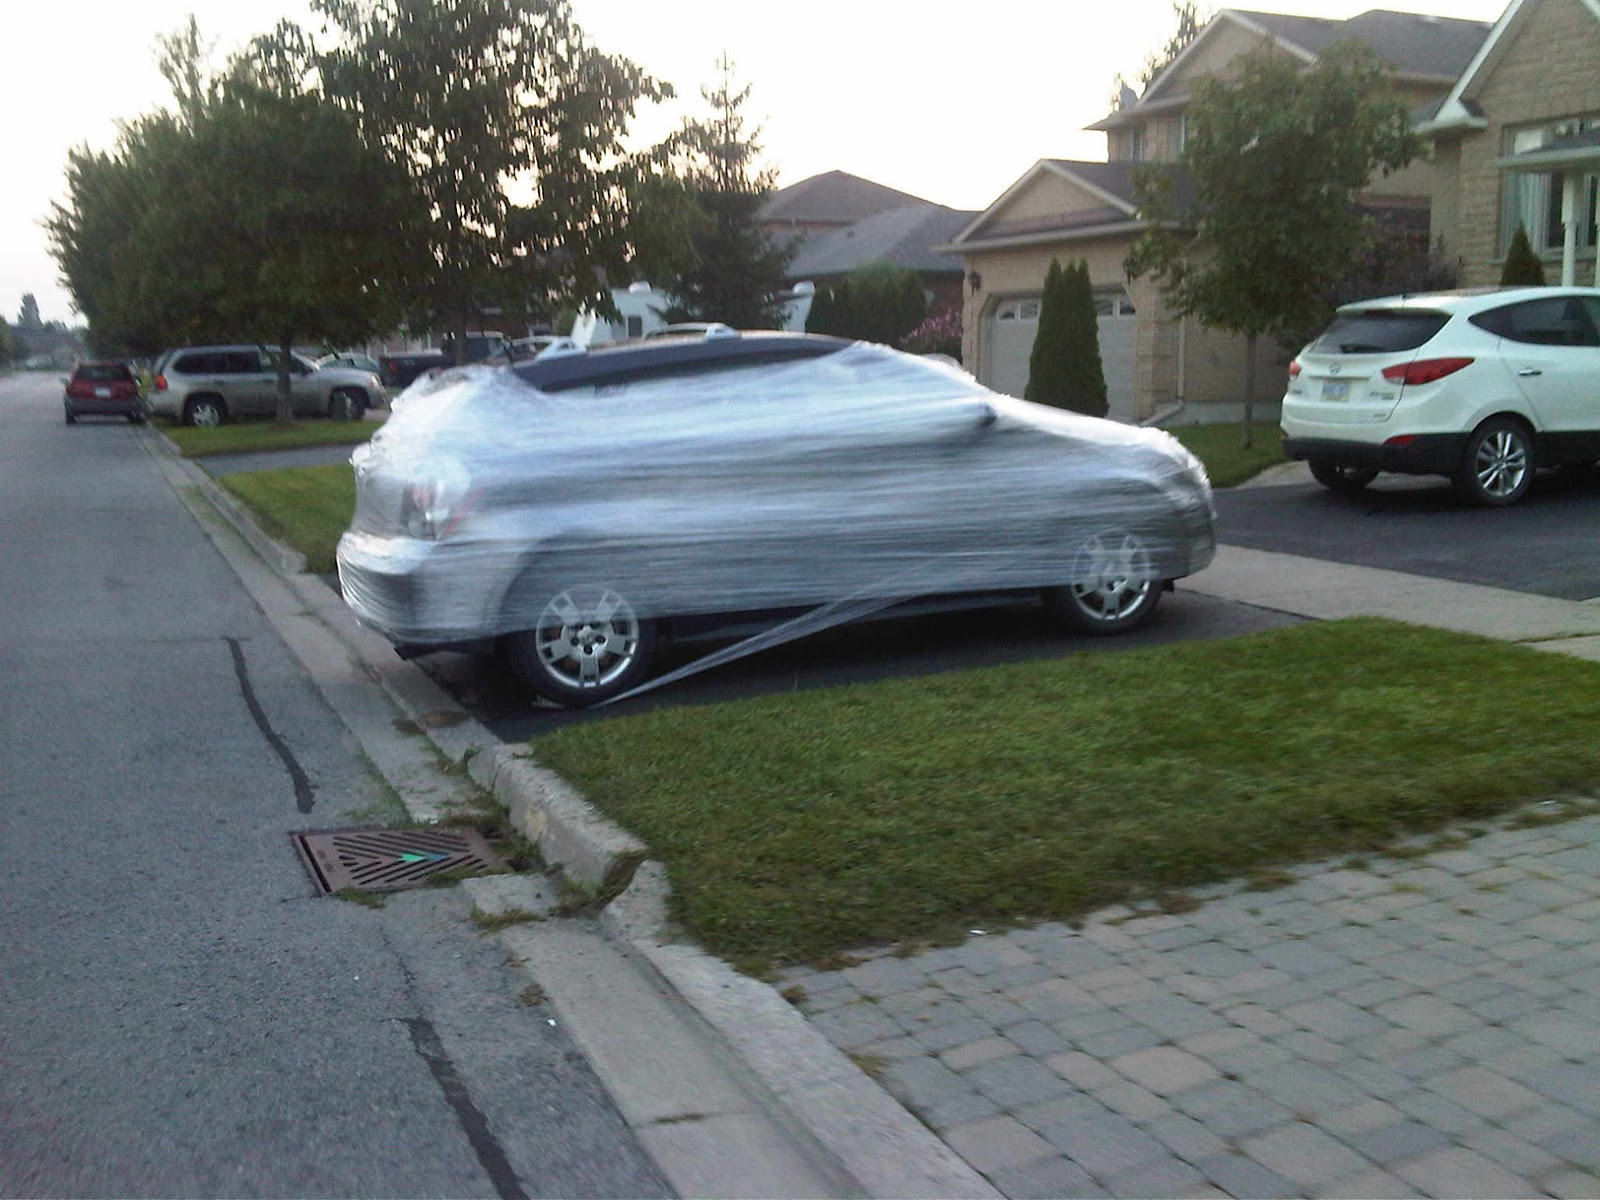 Saran Wrap Car: You. Me. Ride This Crazy Train